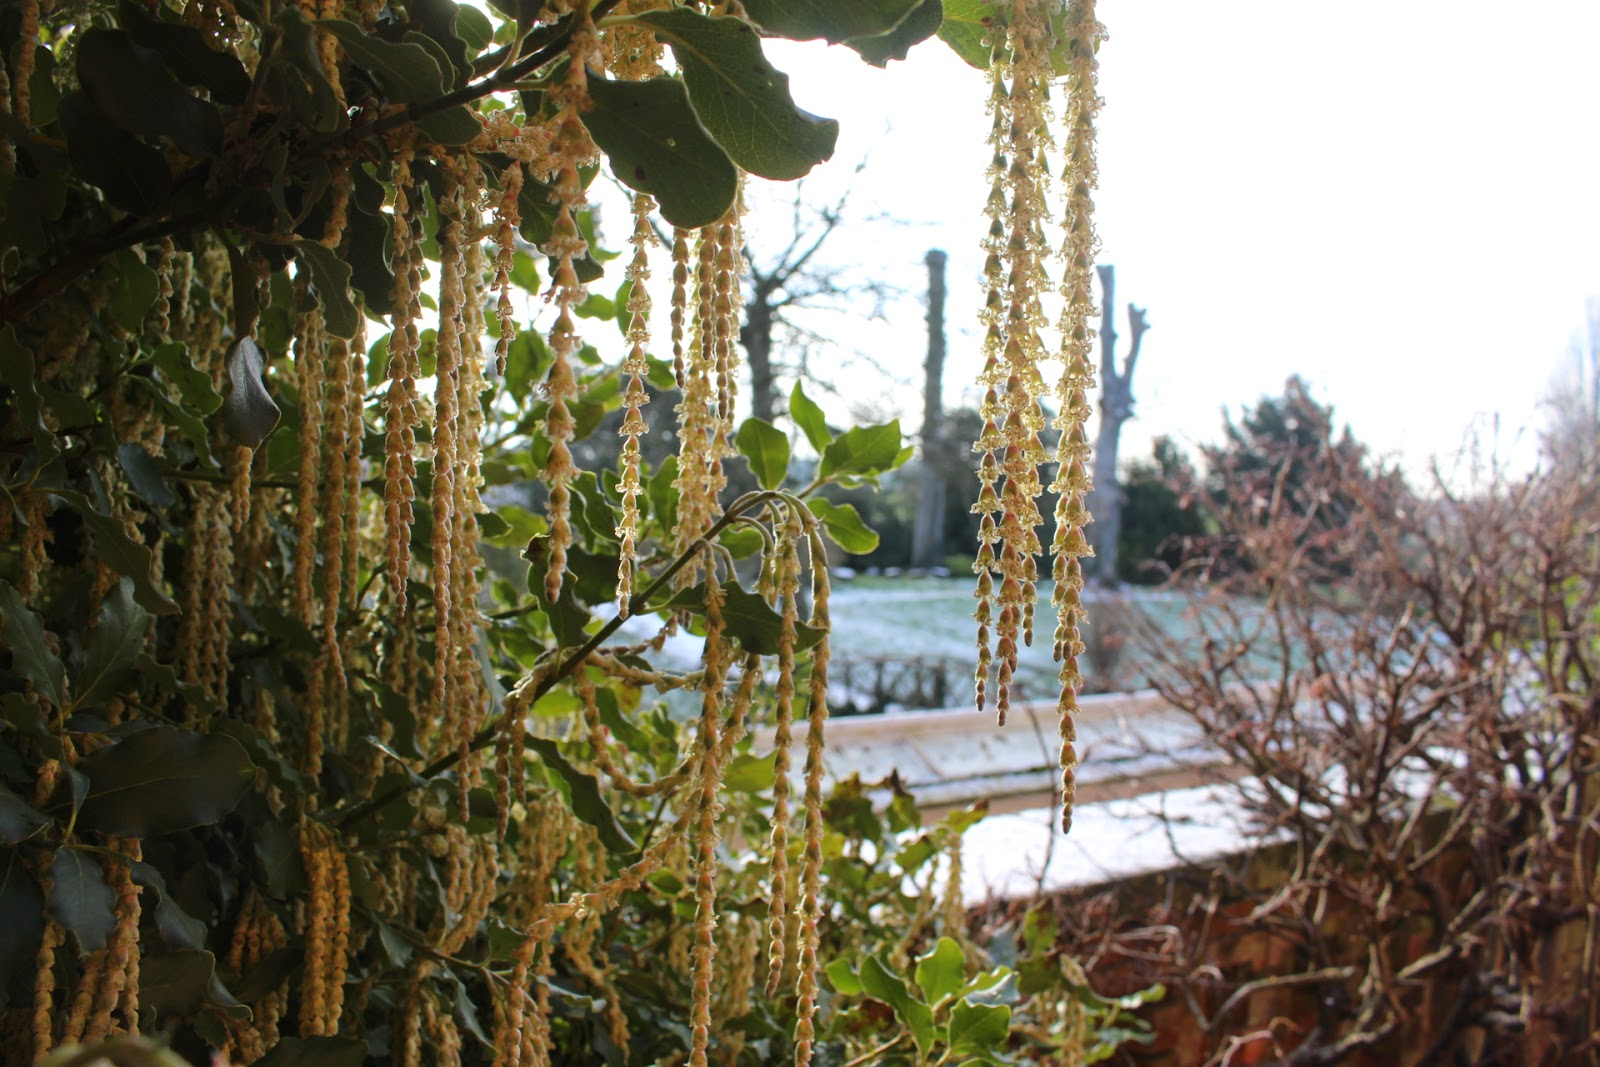 Garrya elliptica at Hodsock Priory